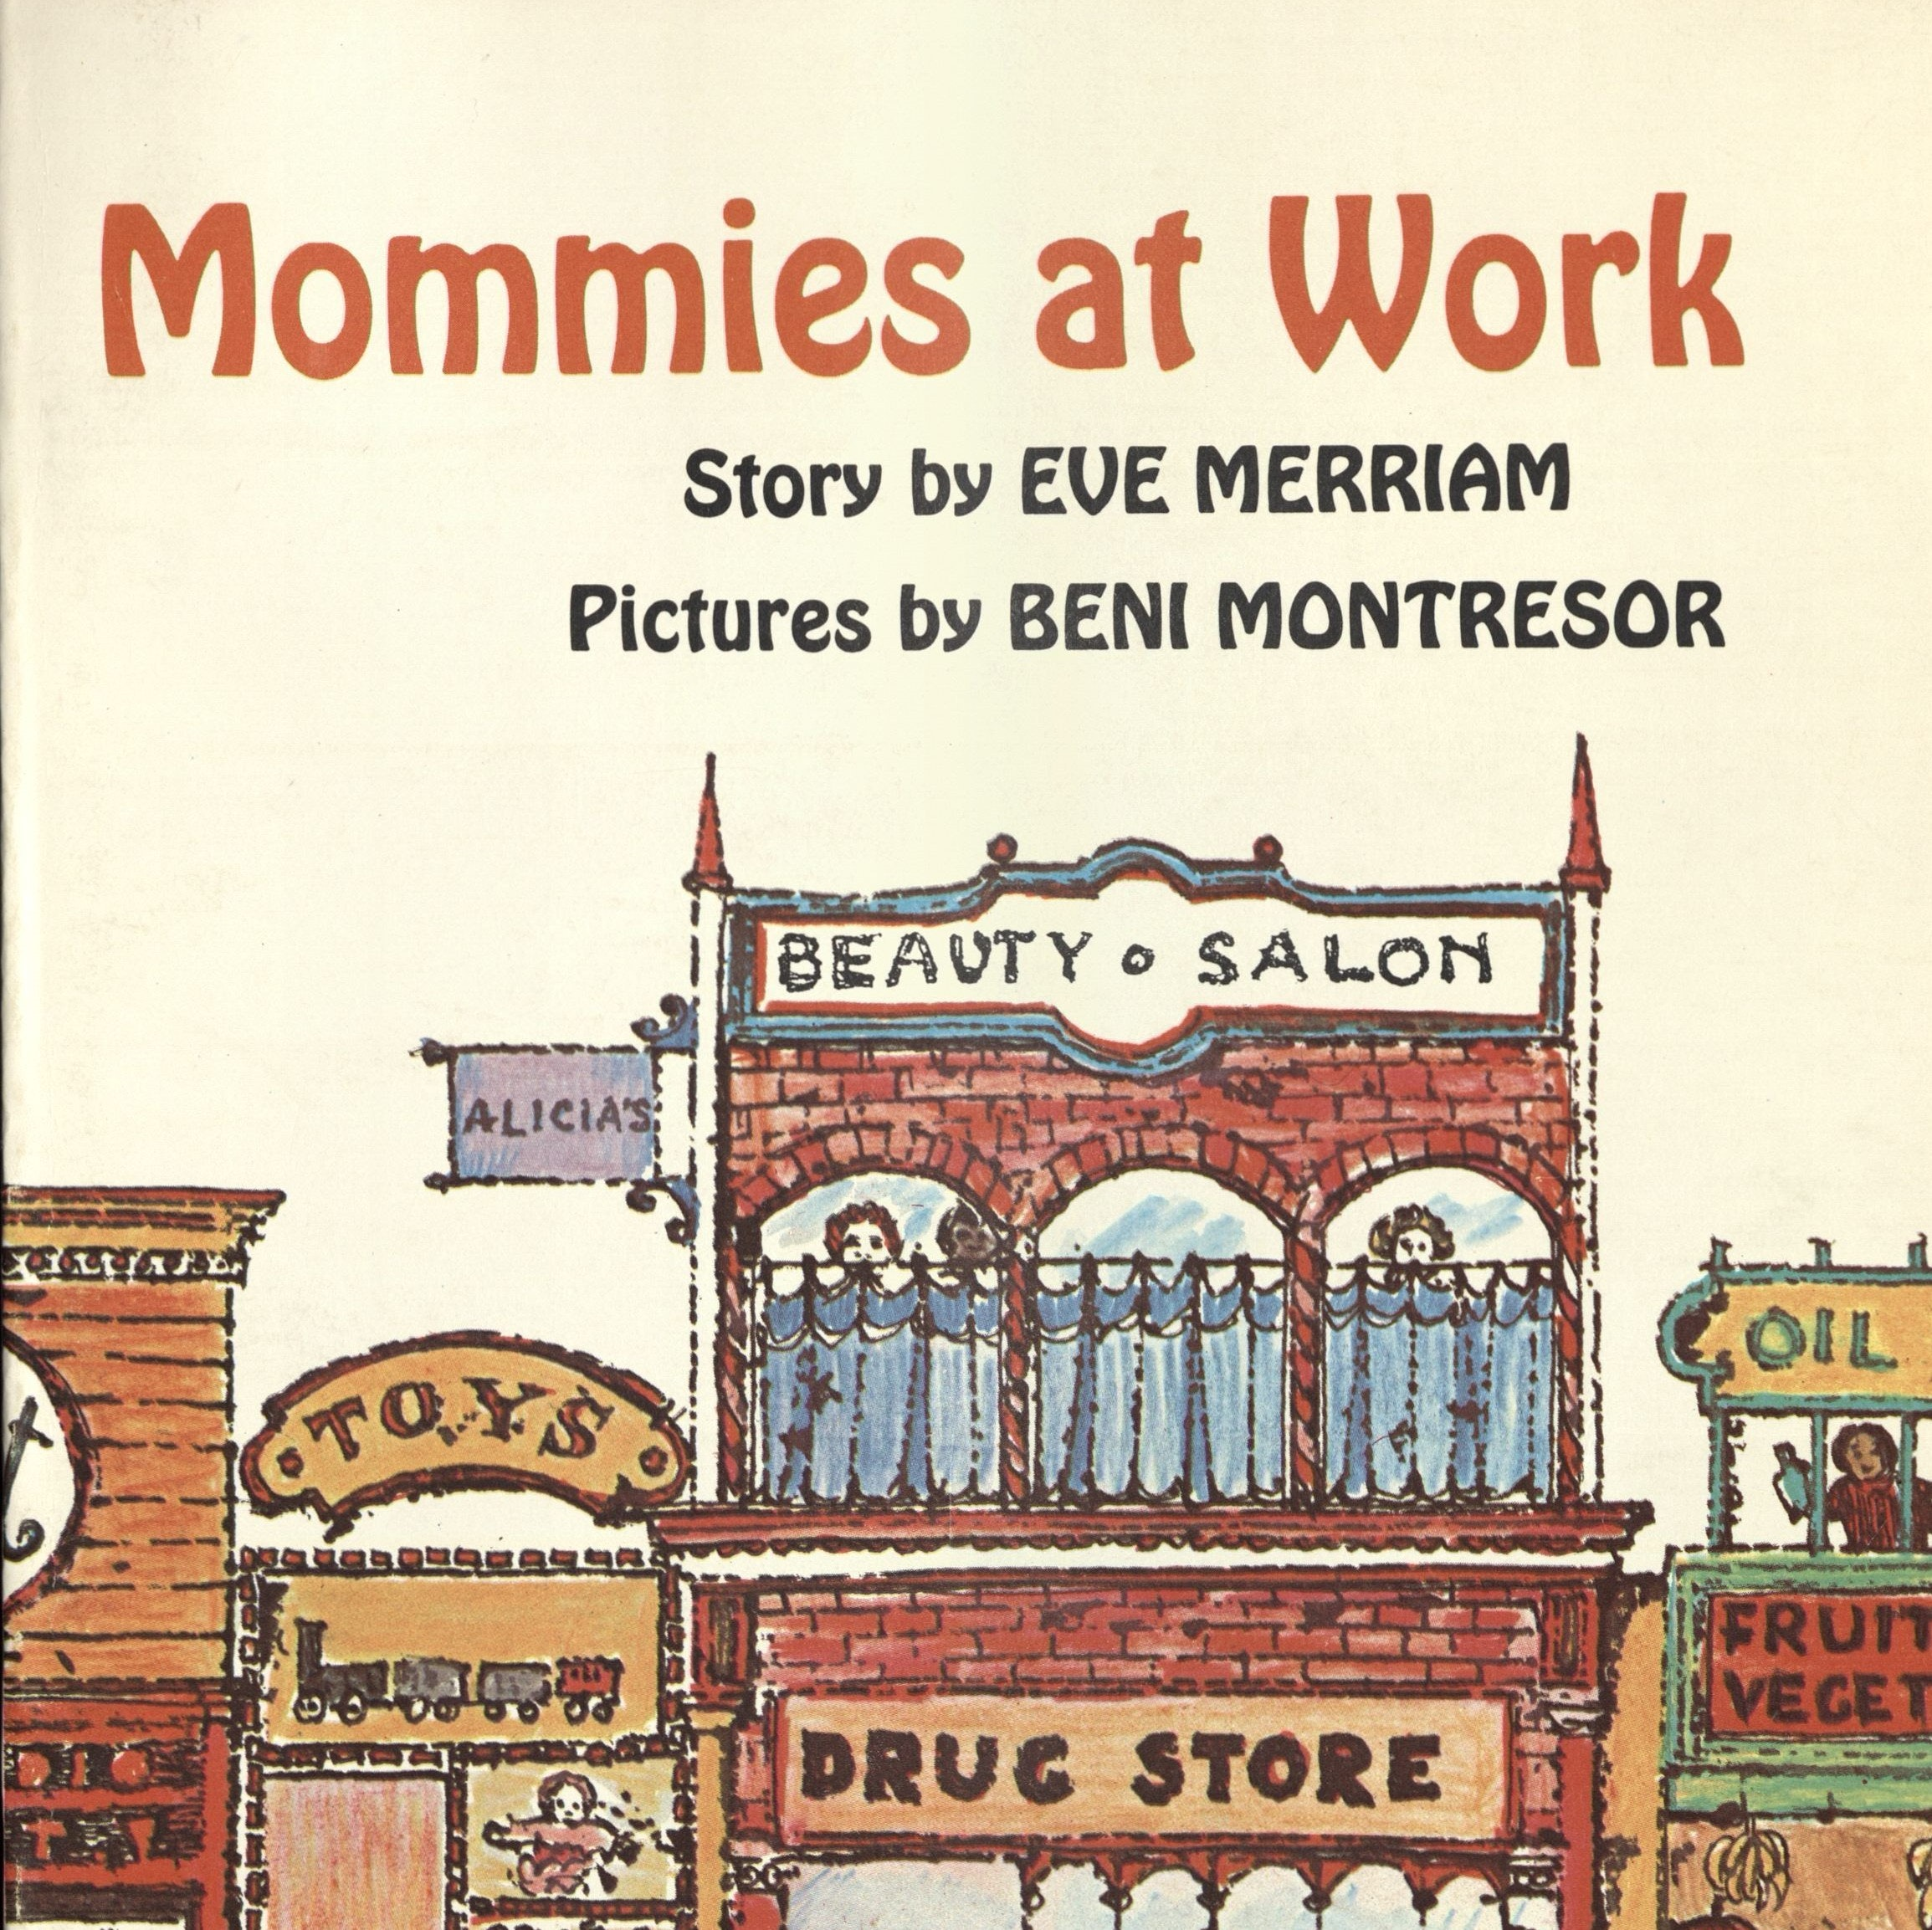 Book by Eve Merriam